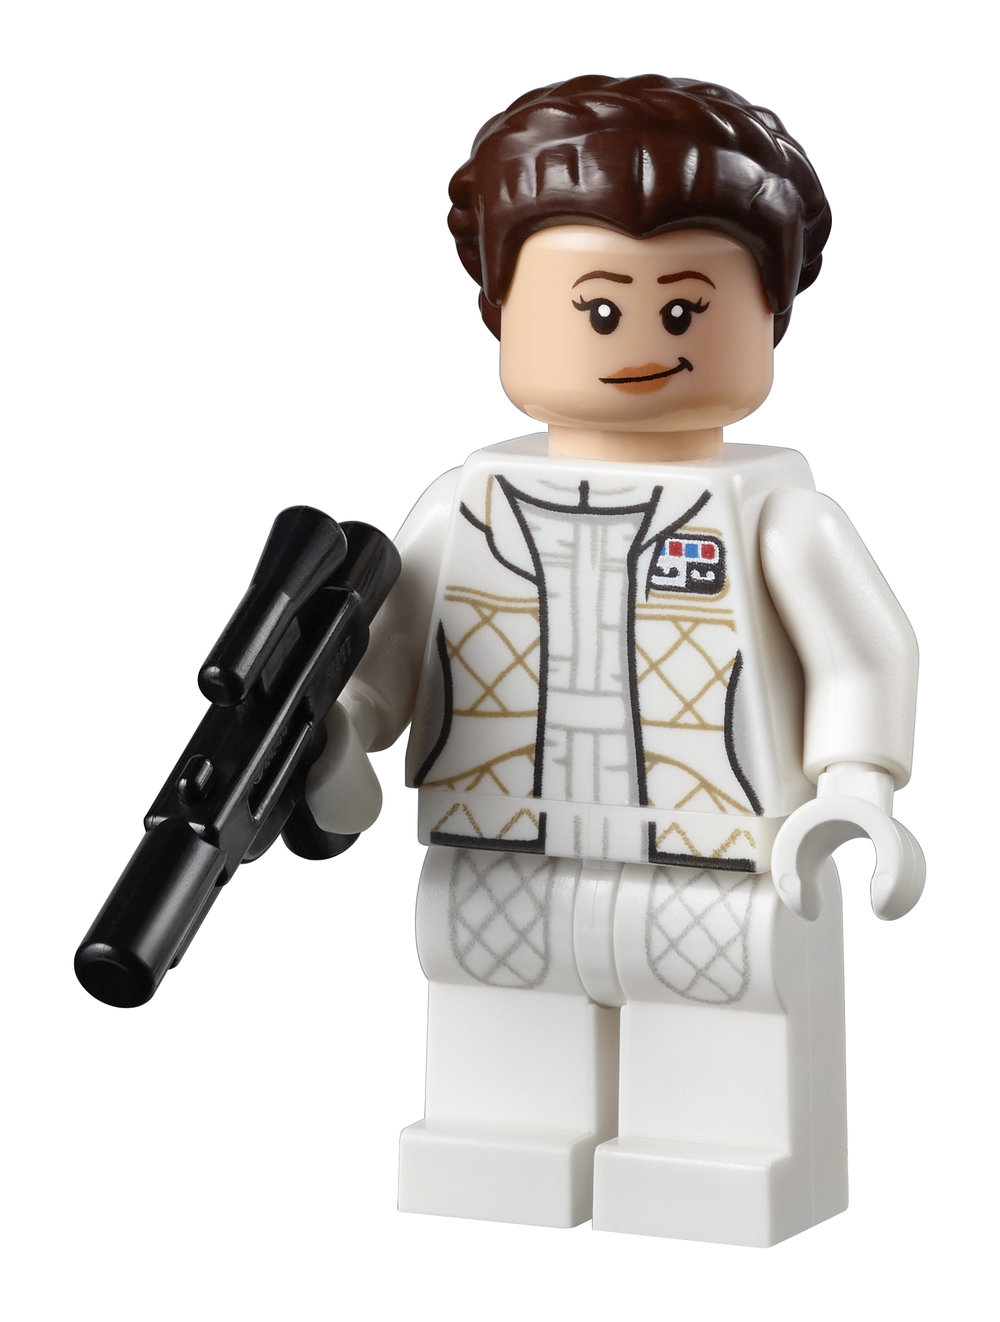 75222_Top_Panel_Minifigure_08.jpg